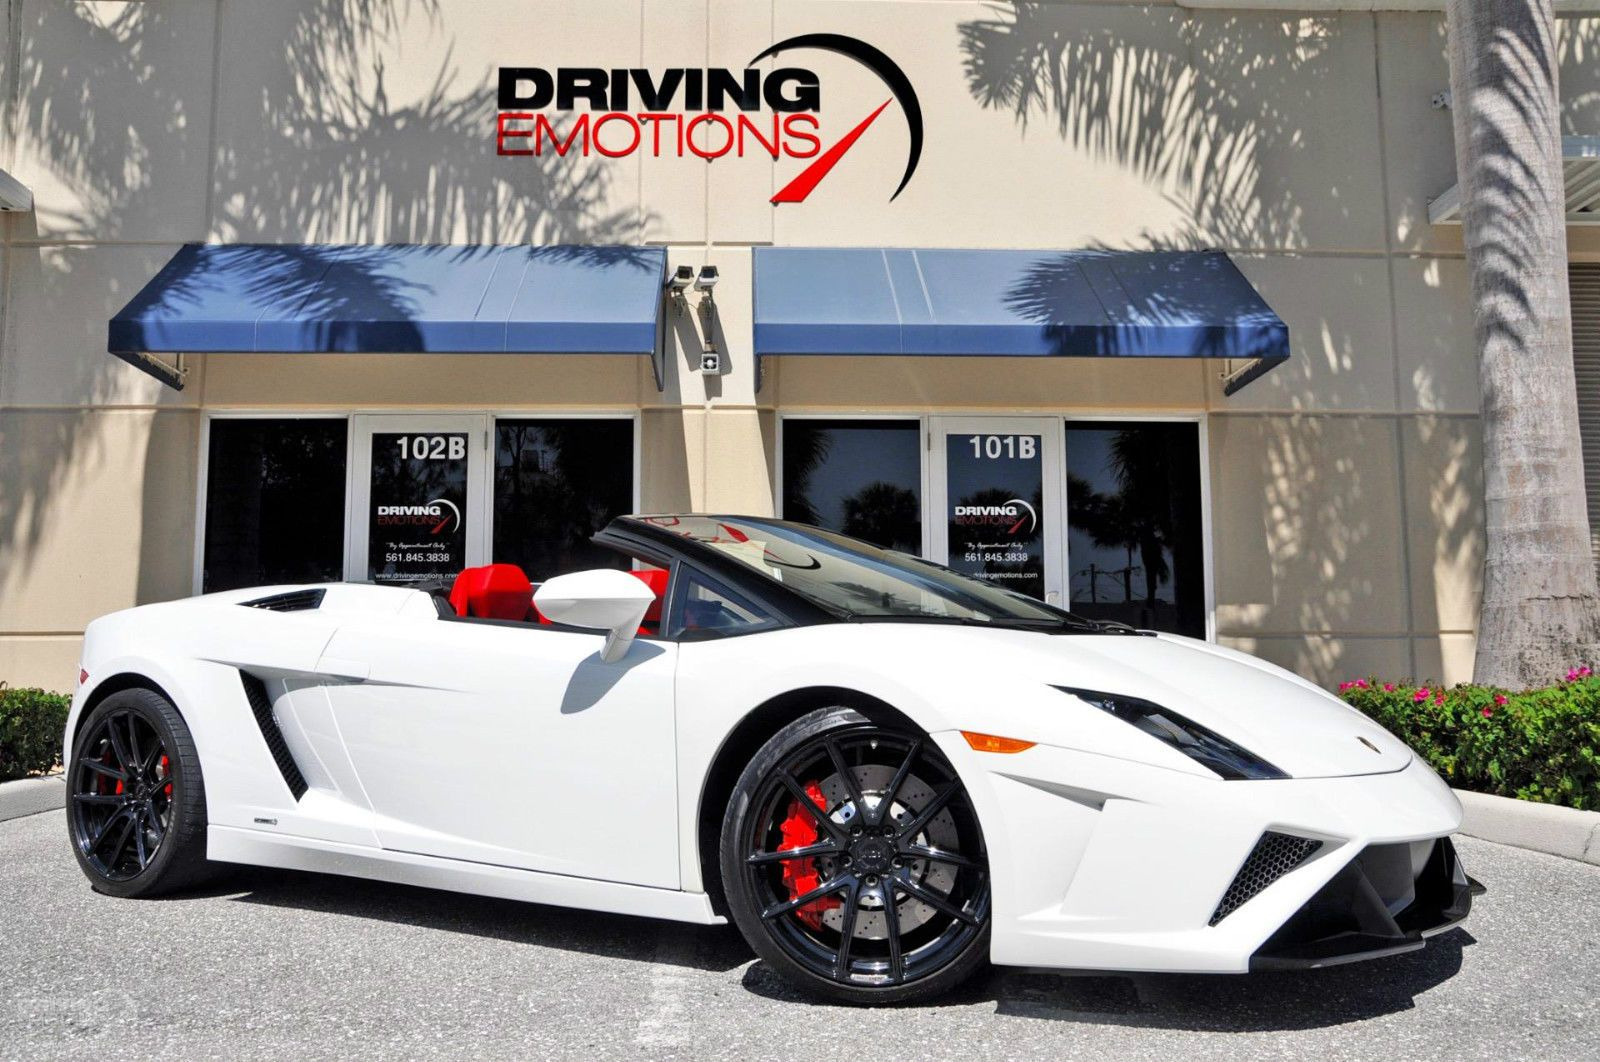 Charming Nice Awesome 2013 Lamborghini Gallardo LP560 4 Spyder Convertible 2 Door  2013 LAMBORGHINI GALLARDO